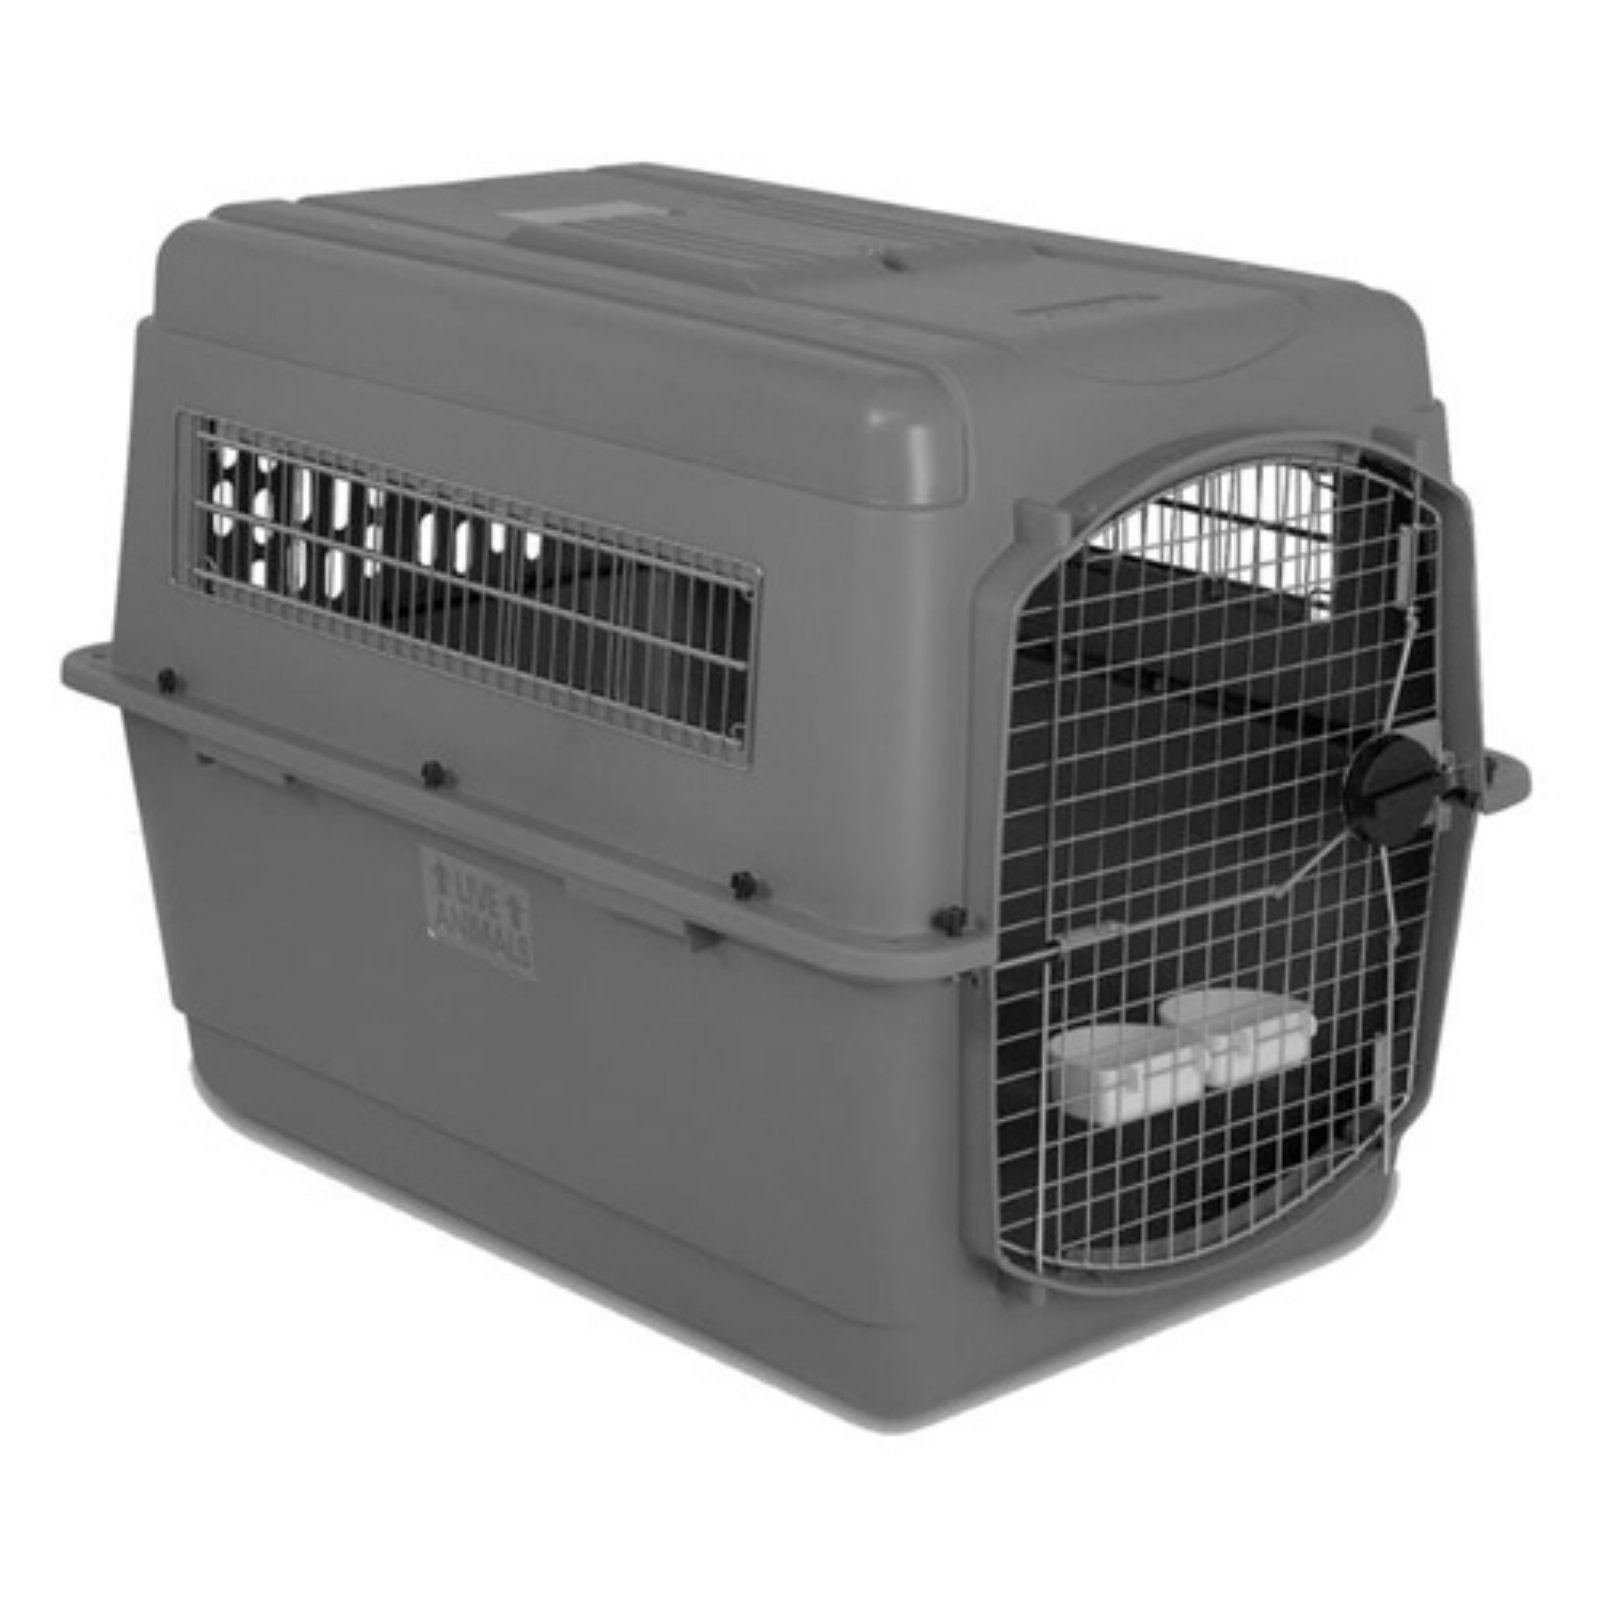 Petmate Sky Kennel Pet Carrier, Up To 15 Lbs